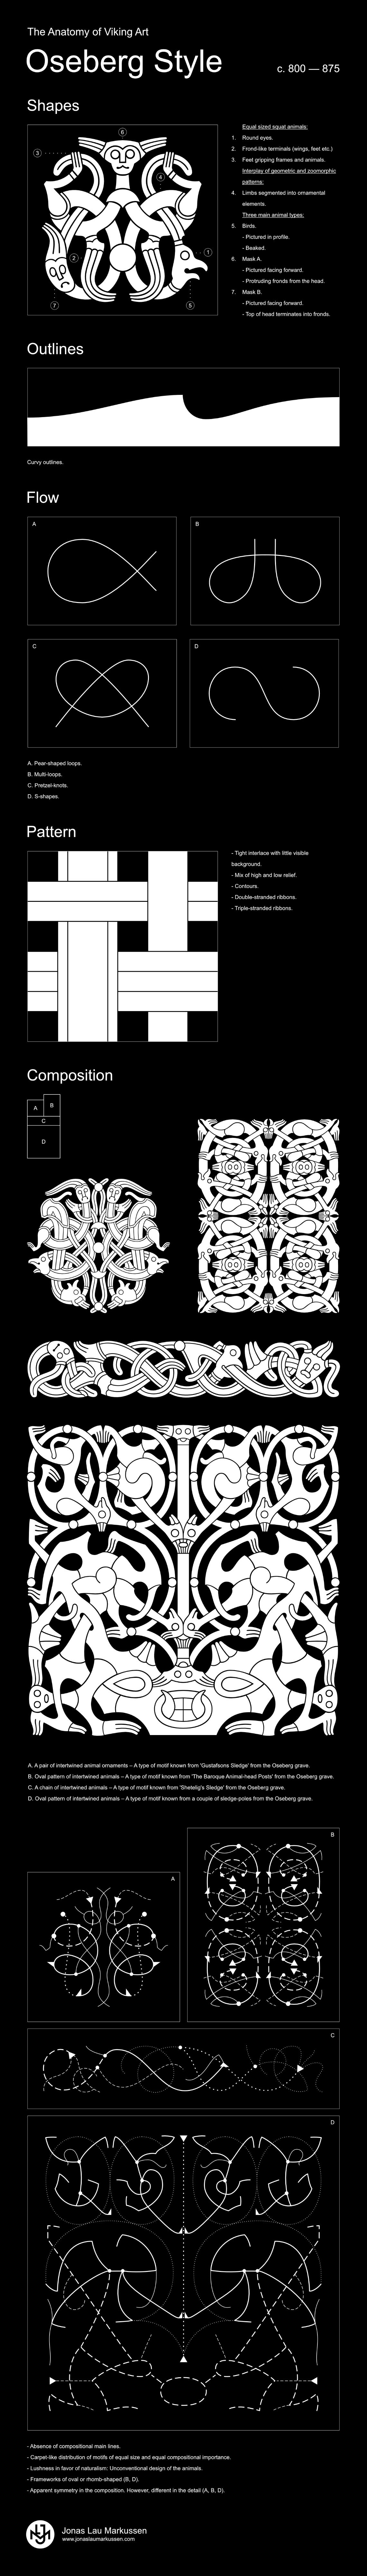 Oseberg Style | Things Viking/Norse - Crafts: Embroidery & Applique ...